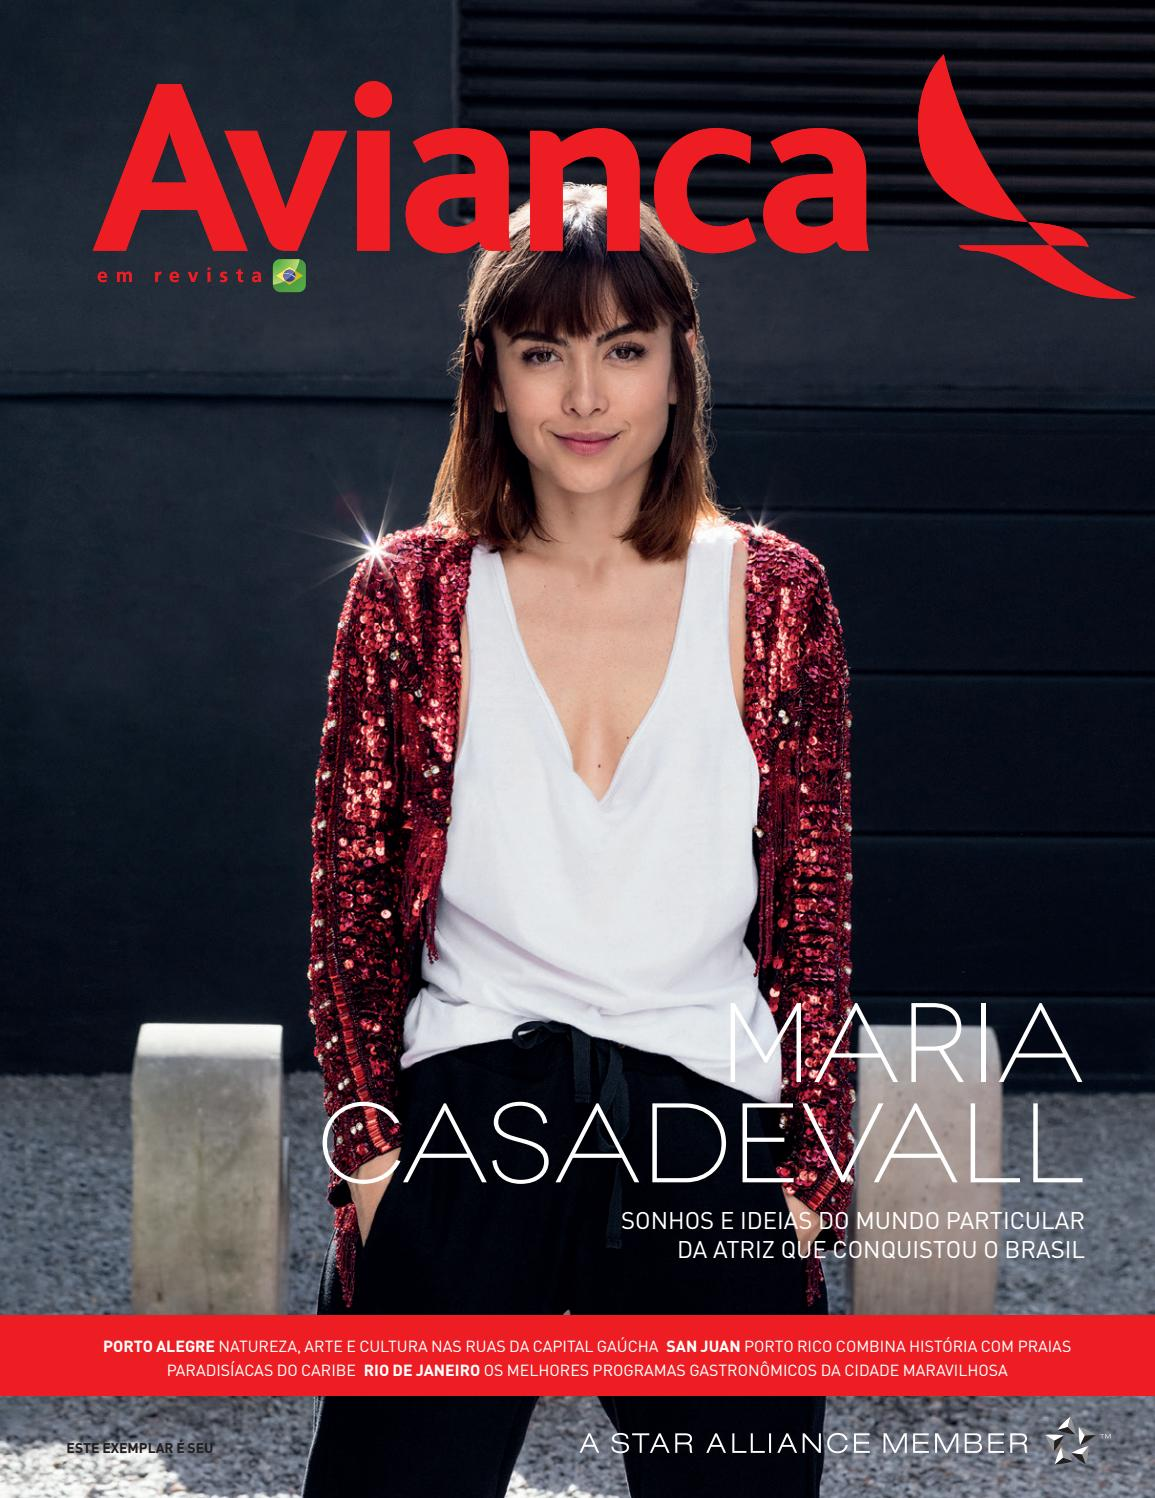 72 - Maria Casadevall by Media Onboard - issuu e3c0db3a14646